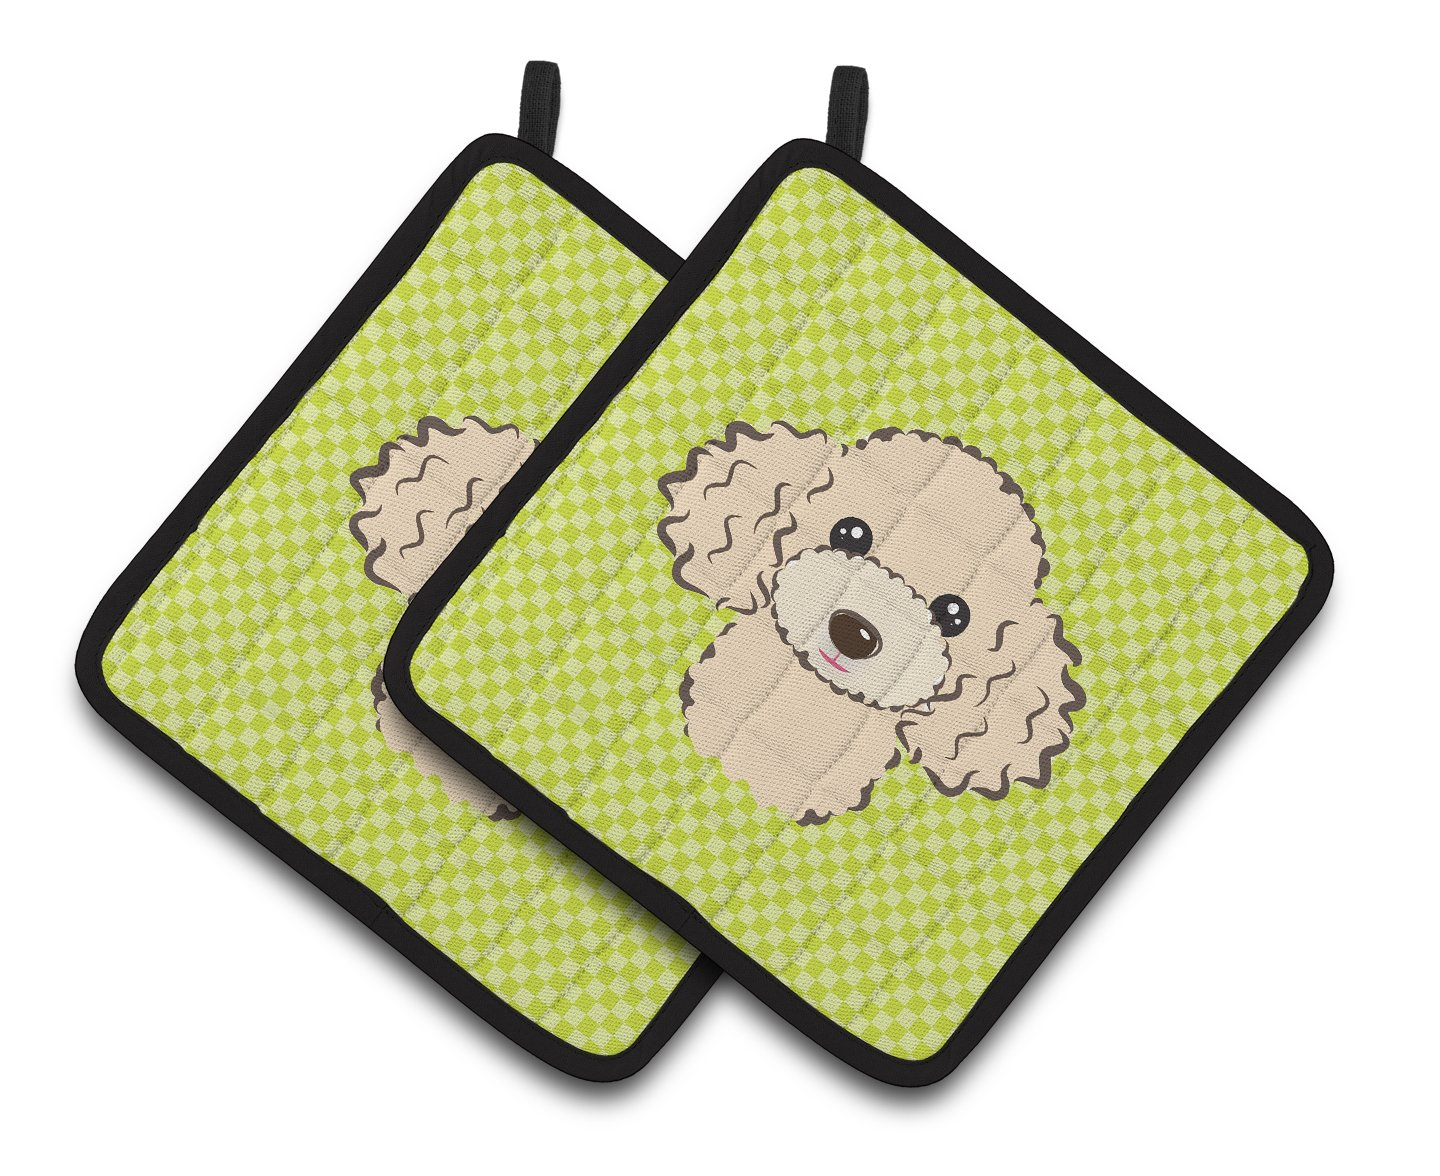 Carolines Treasures Checkerboard Lime green Buff Poodle Pair of Pot Holders BB1320PTHD 7.5HX7.5W Multicolor